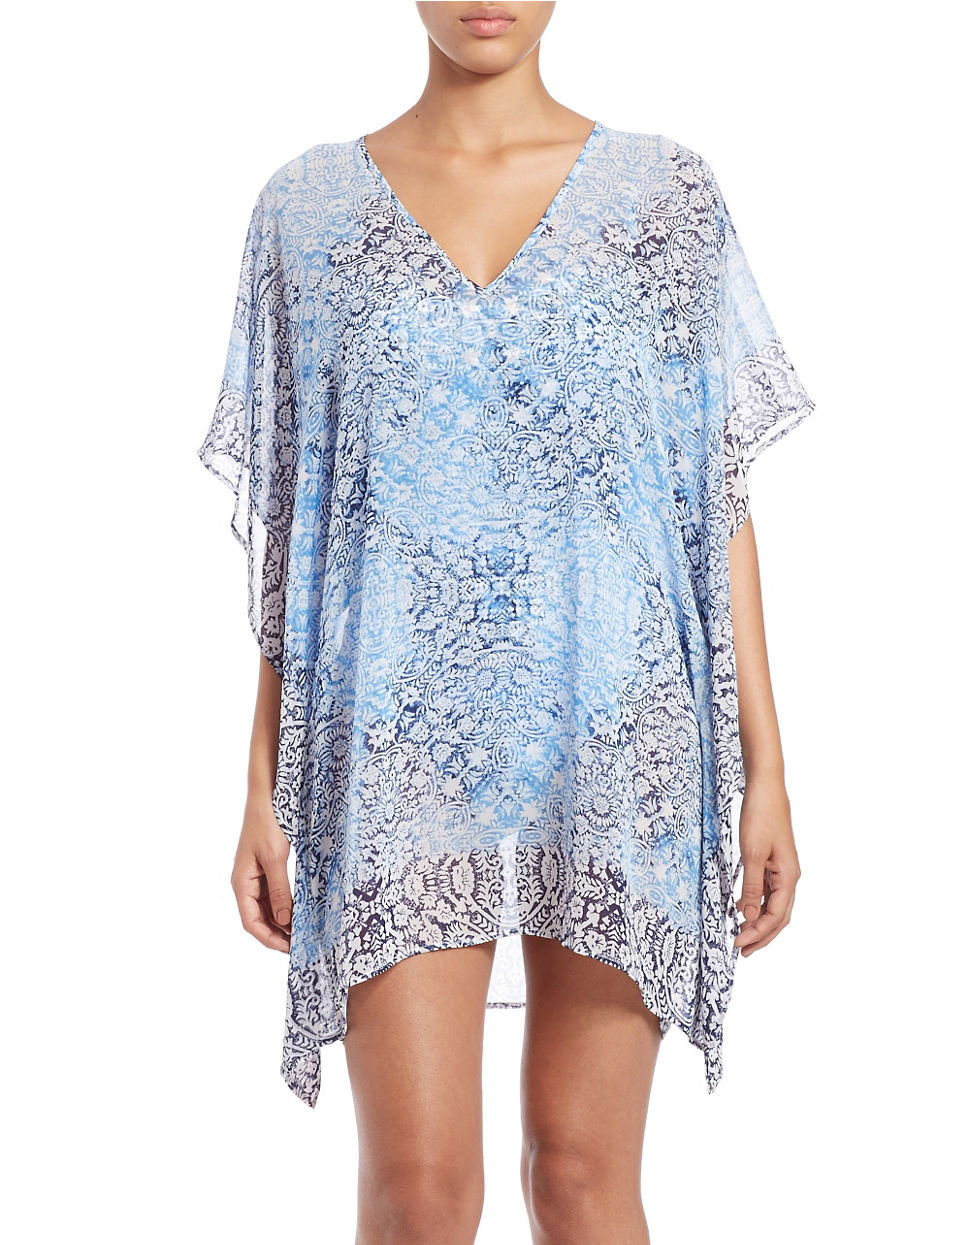 bea5a1c395 Lyst - Tommy Bahama Coral Medallion Cover-up in Blue